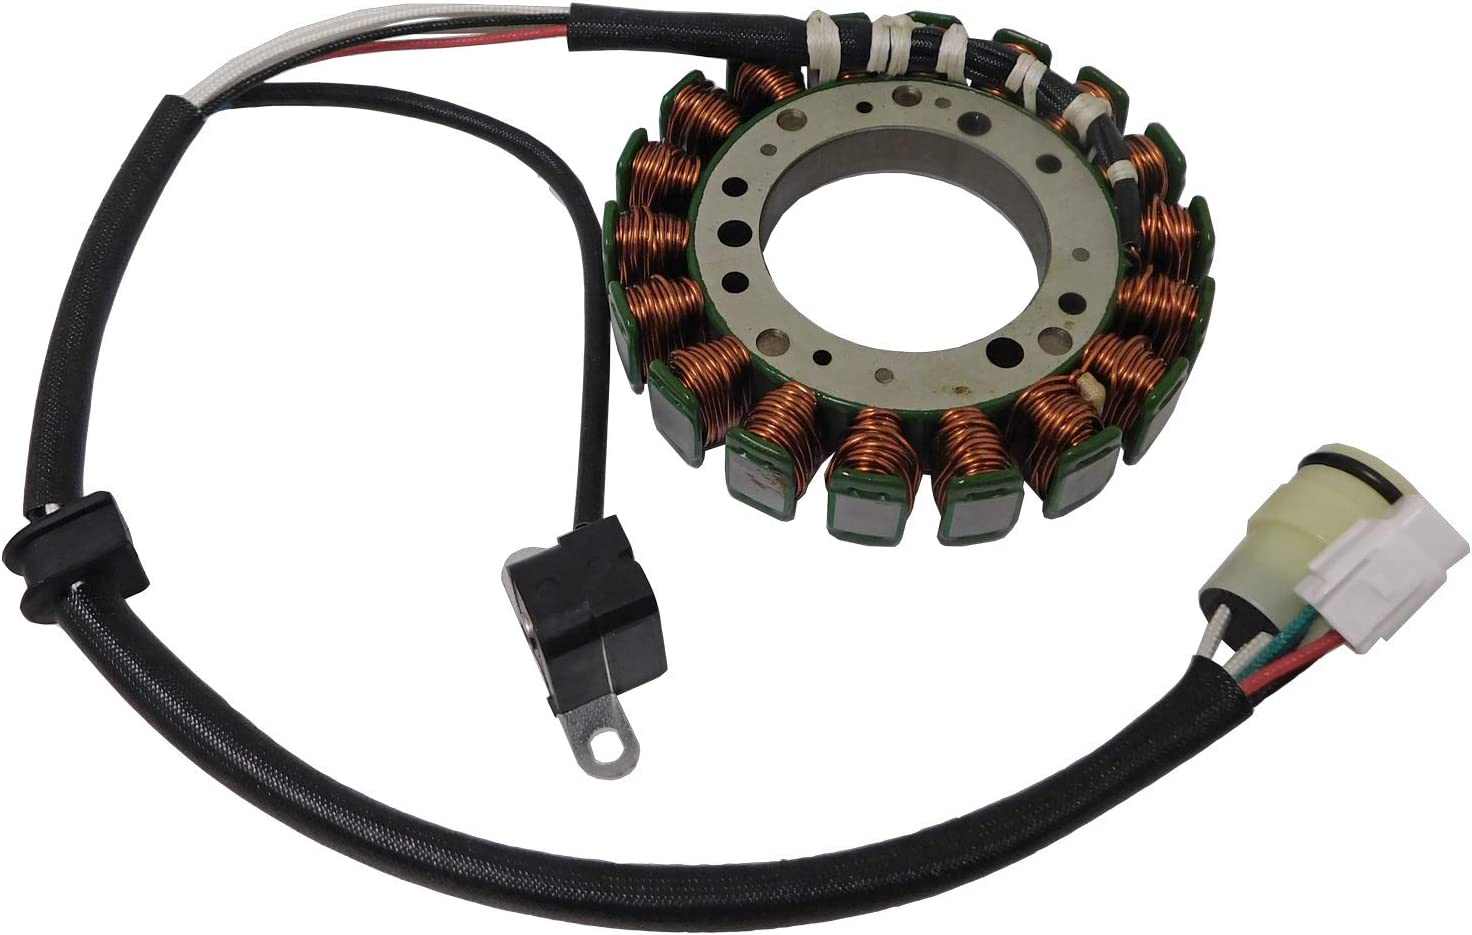 285690 Big Bear 400 21-901 Warrior 350 YFM350 2002-2004 5FU-81410-00-00 New Yamaha Stator For ATV Raptor 350 YFM350 2004-2010 RM01017